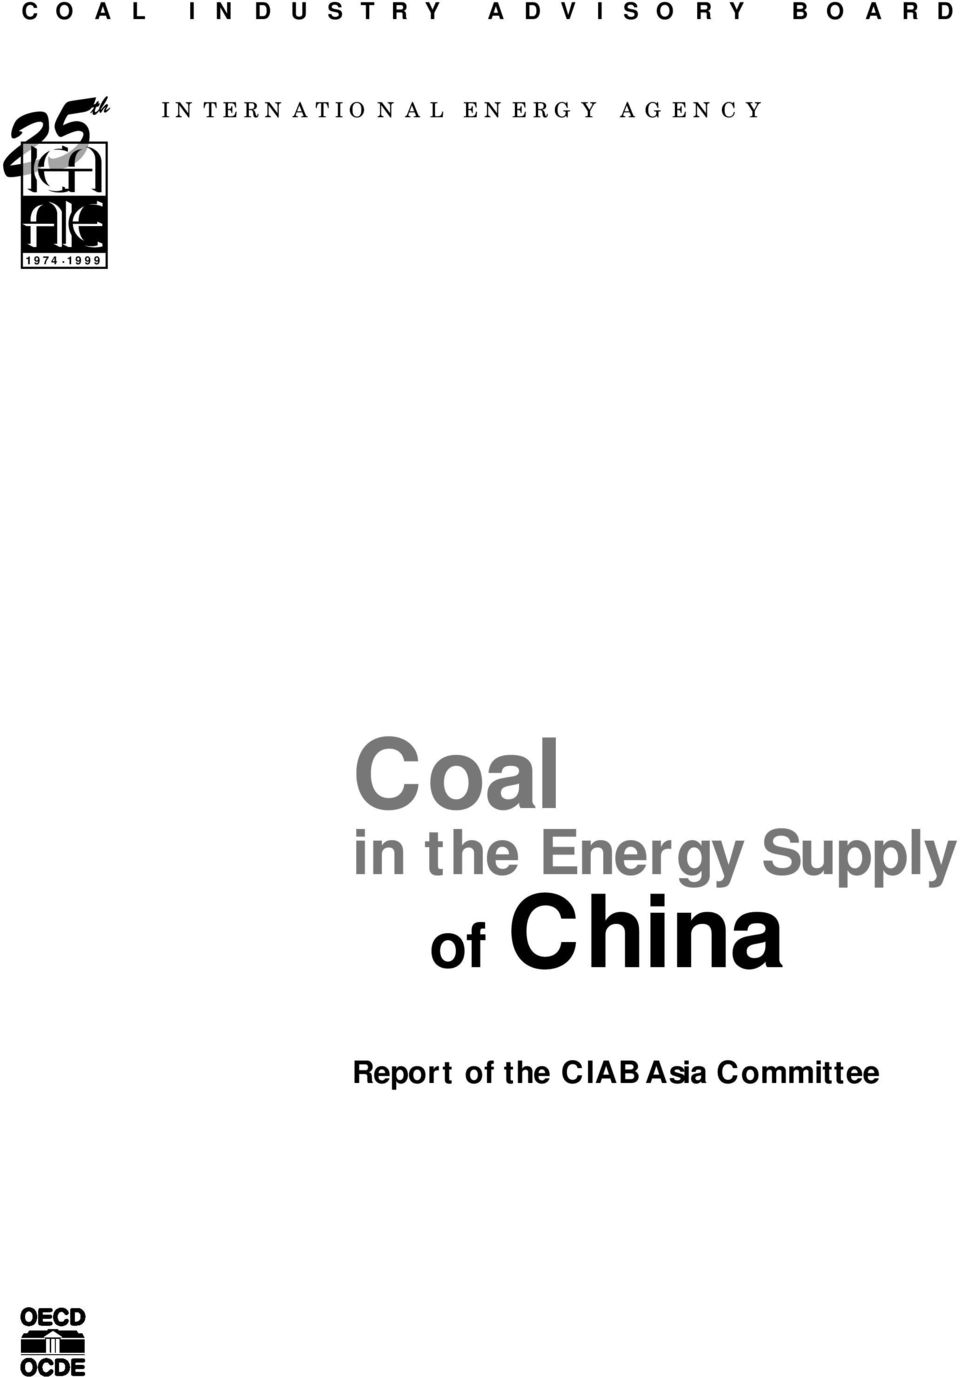 1974. 1999 Coal in the Energy Supply of